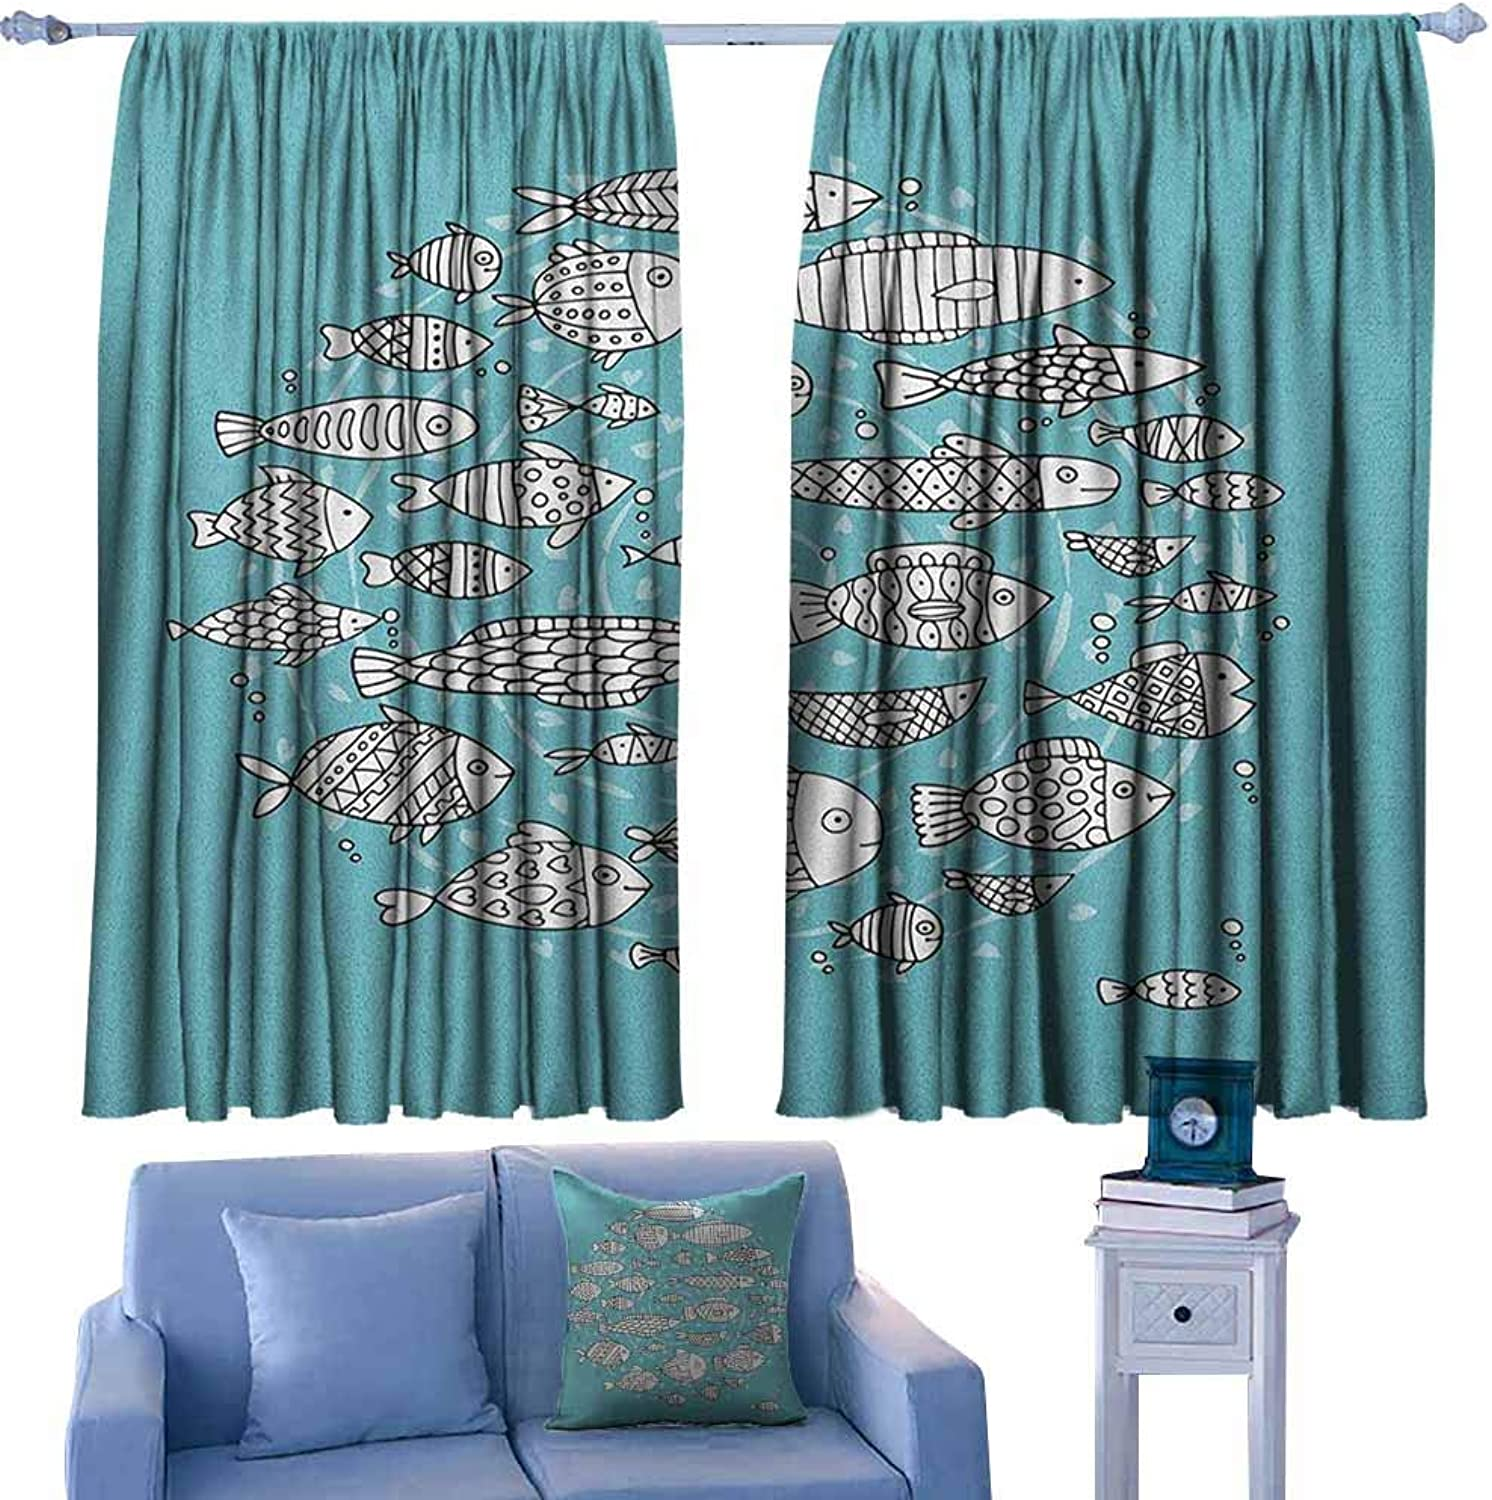 AndyTours Curtains for livingroom Bedroom,Doodle Baby Fish Community Swimming in The Ocean Kids Nursery Playroom Cartoon,Darkening Thermal Insulated Blackout,W63x45L Inches Pale bluee and White